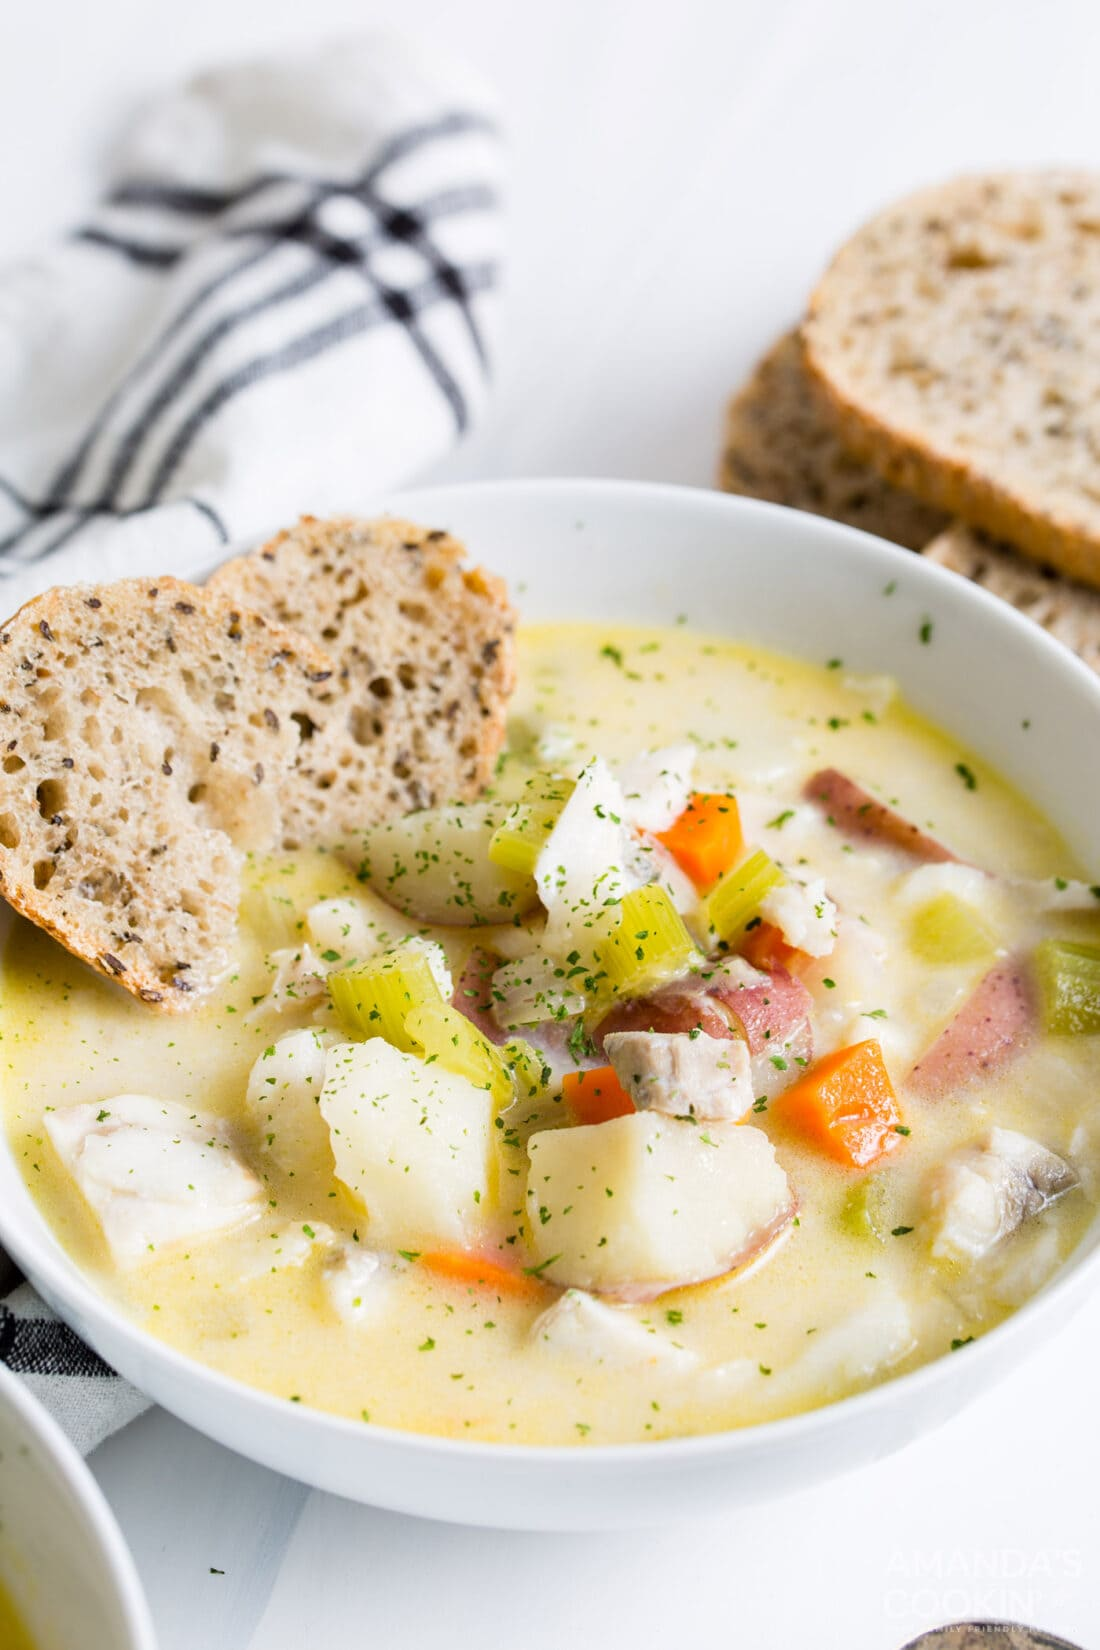 bowl of fish chowder with side of bread